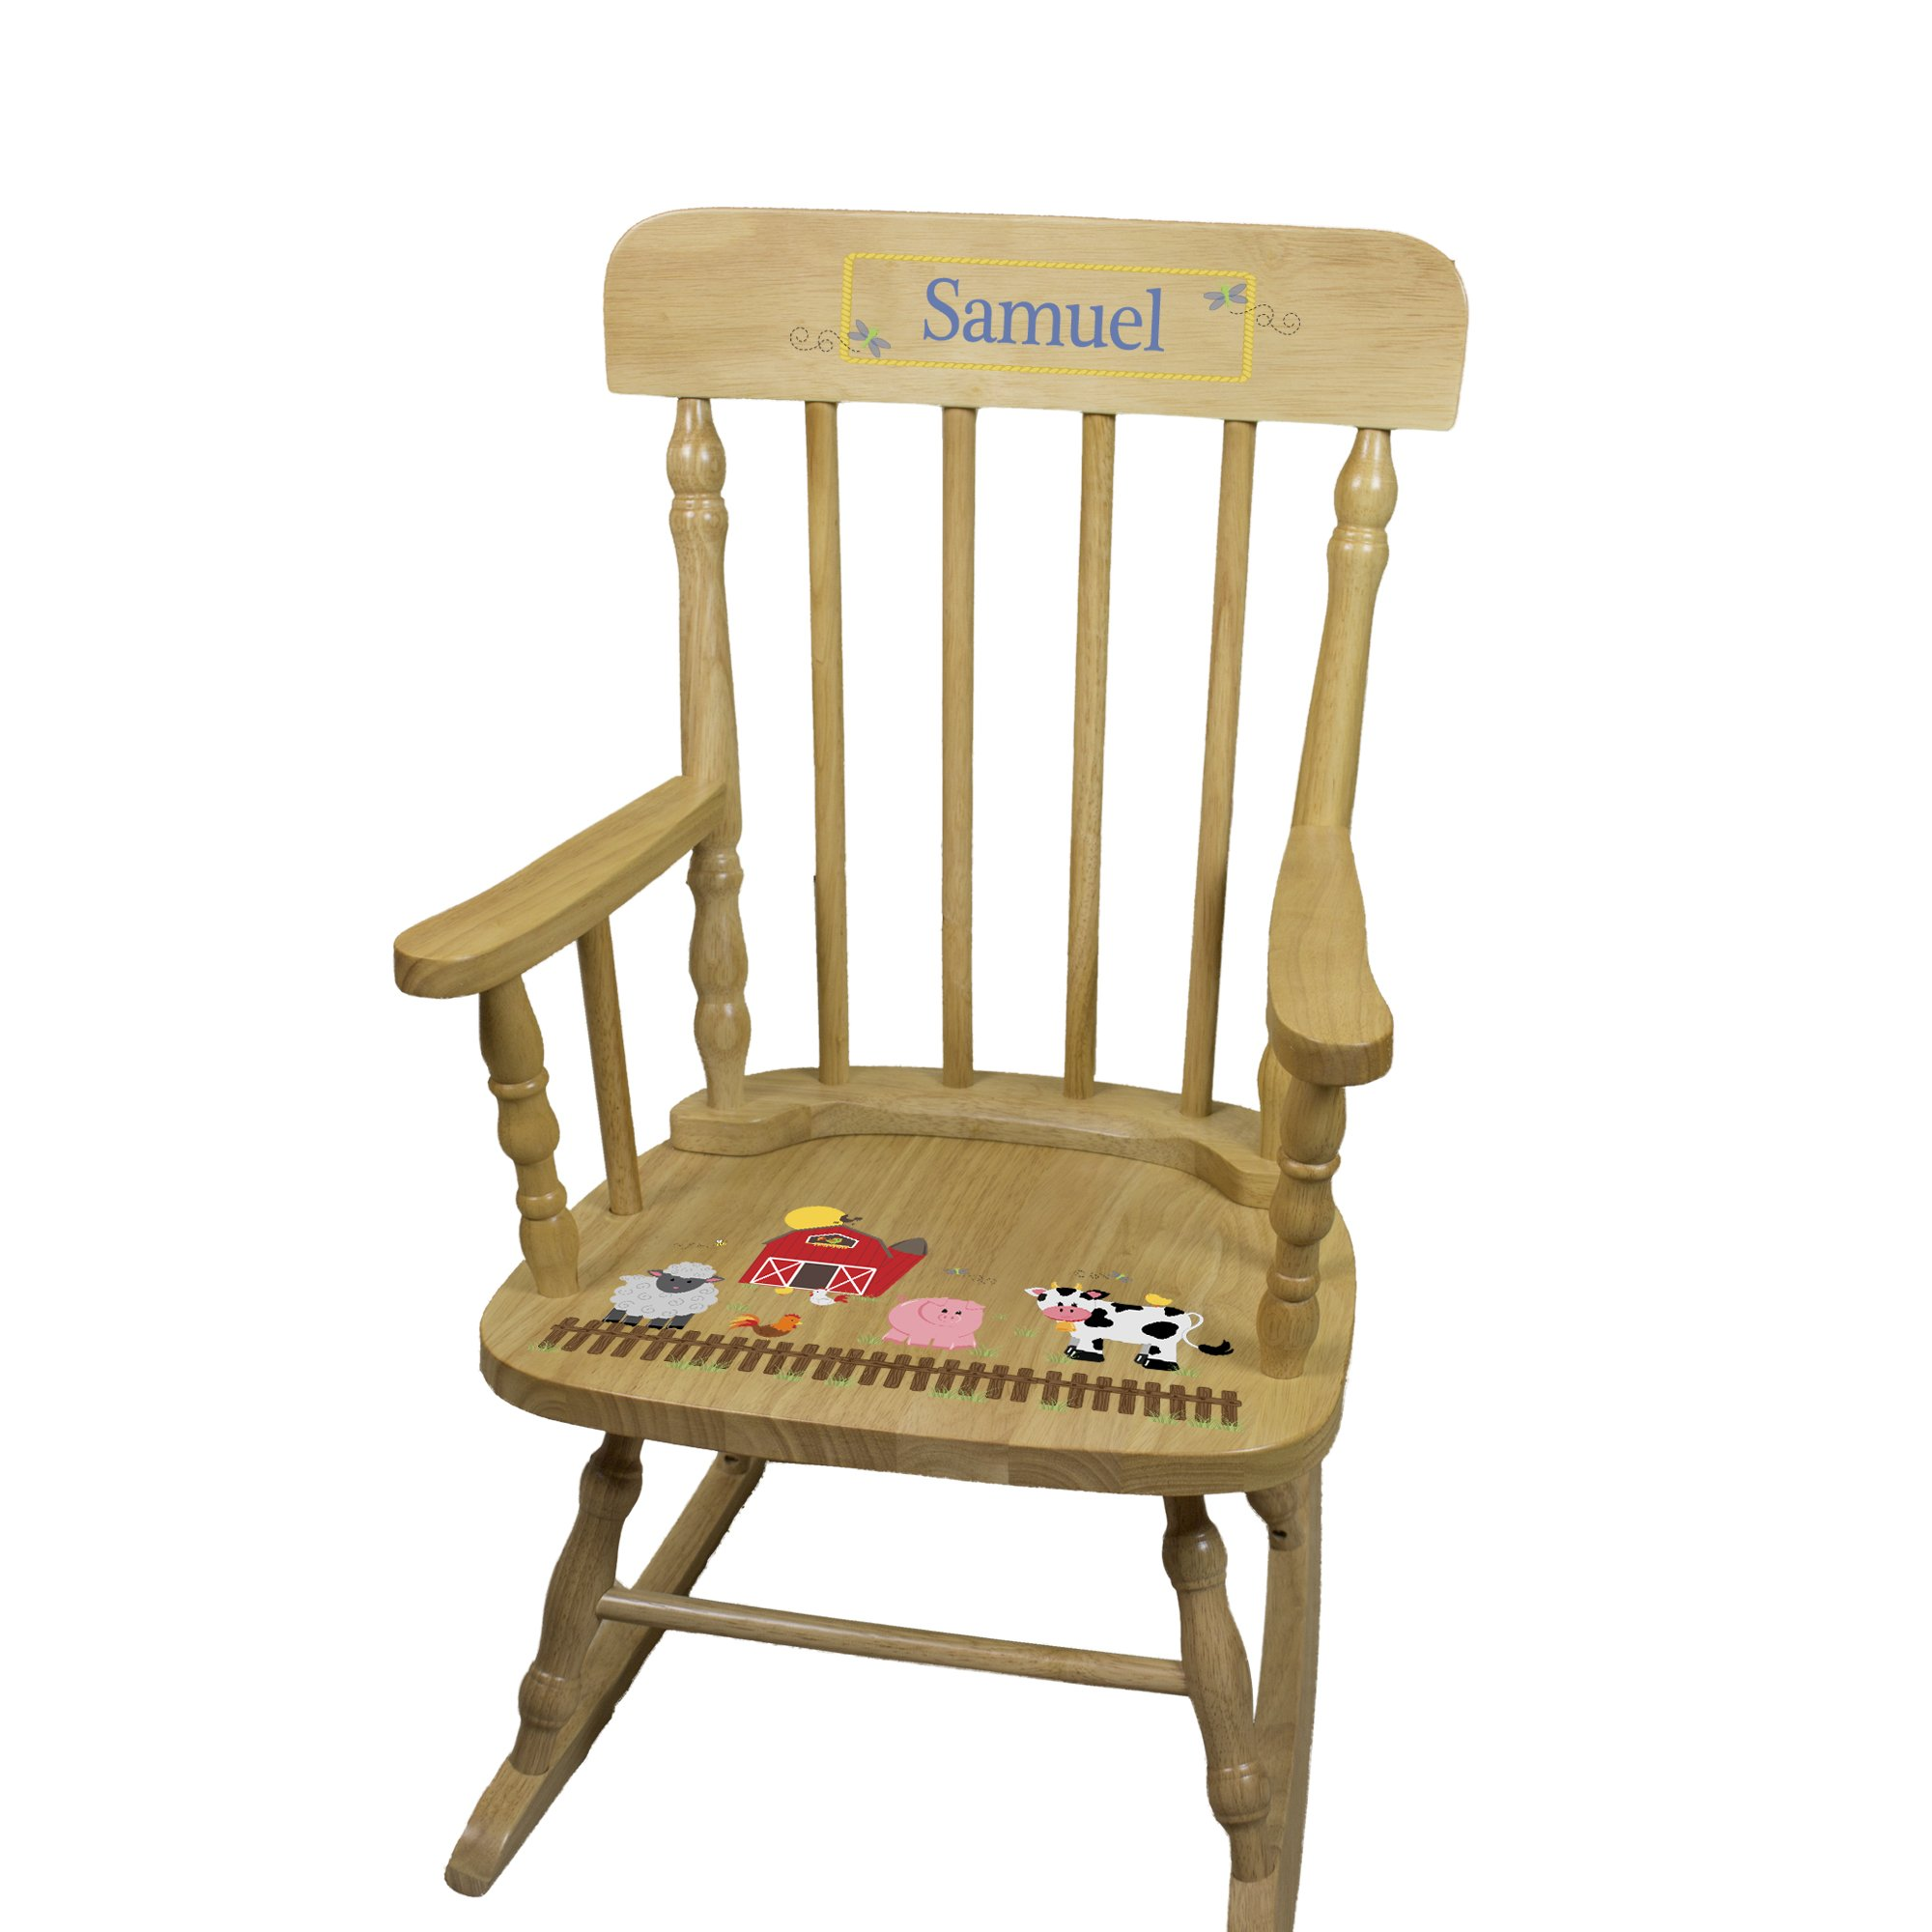 Personalized Wooden Barnyard Rocking Chair